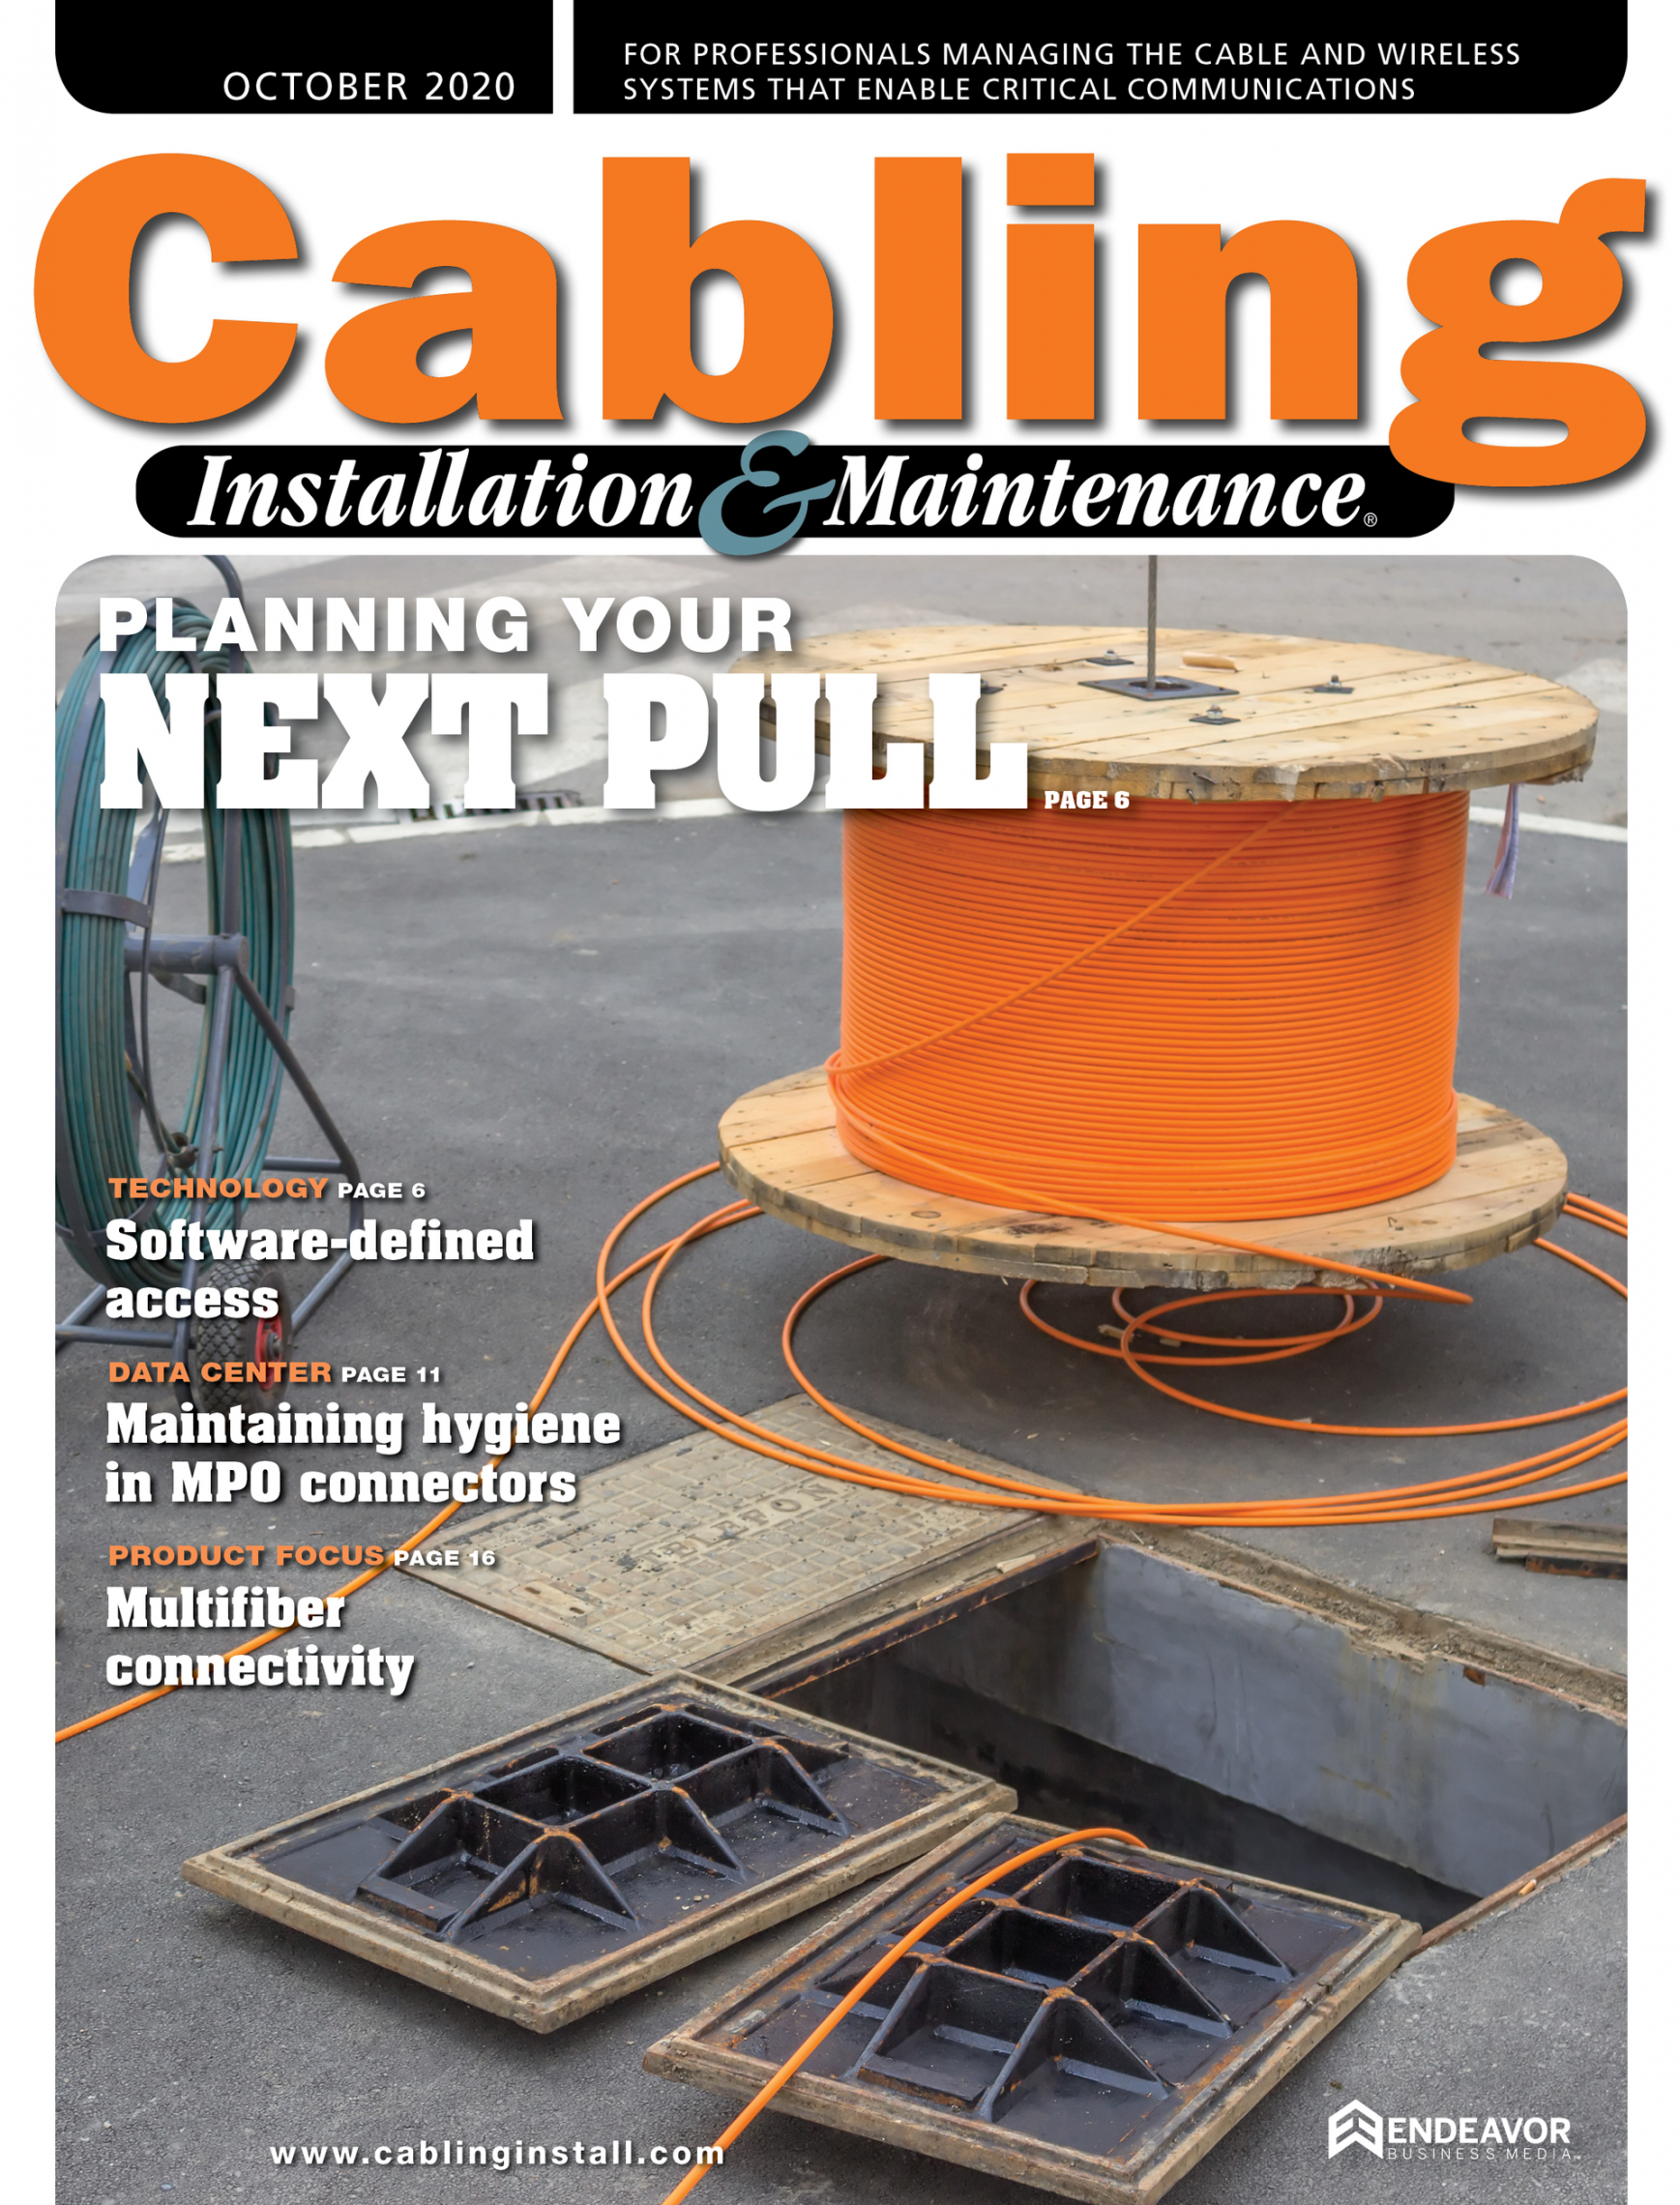 Magazines | Cabling Installation & Maintenance